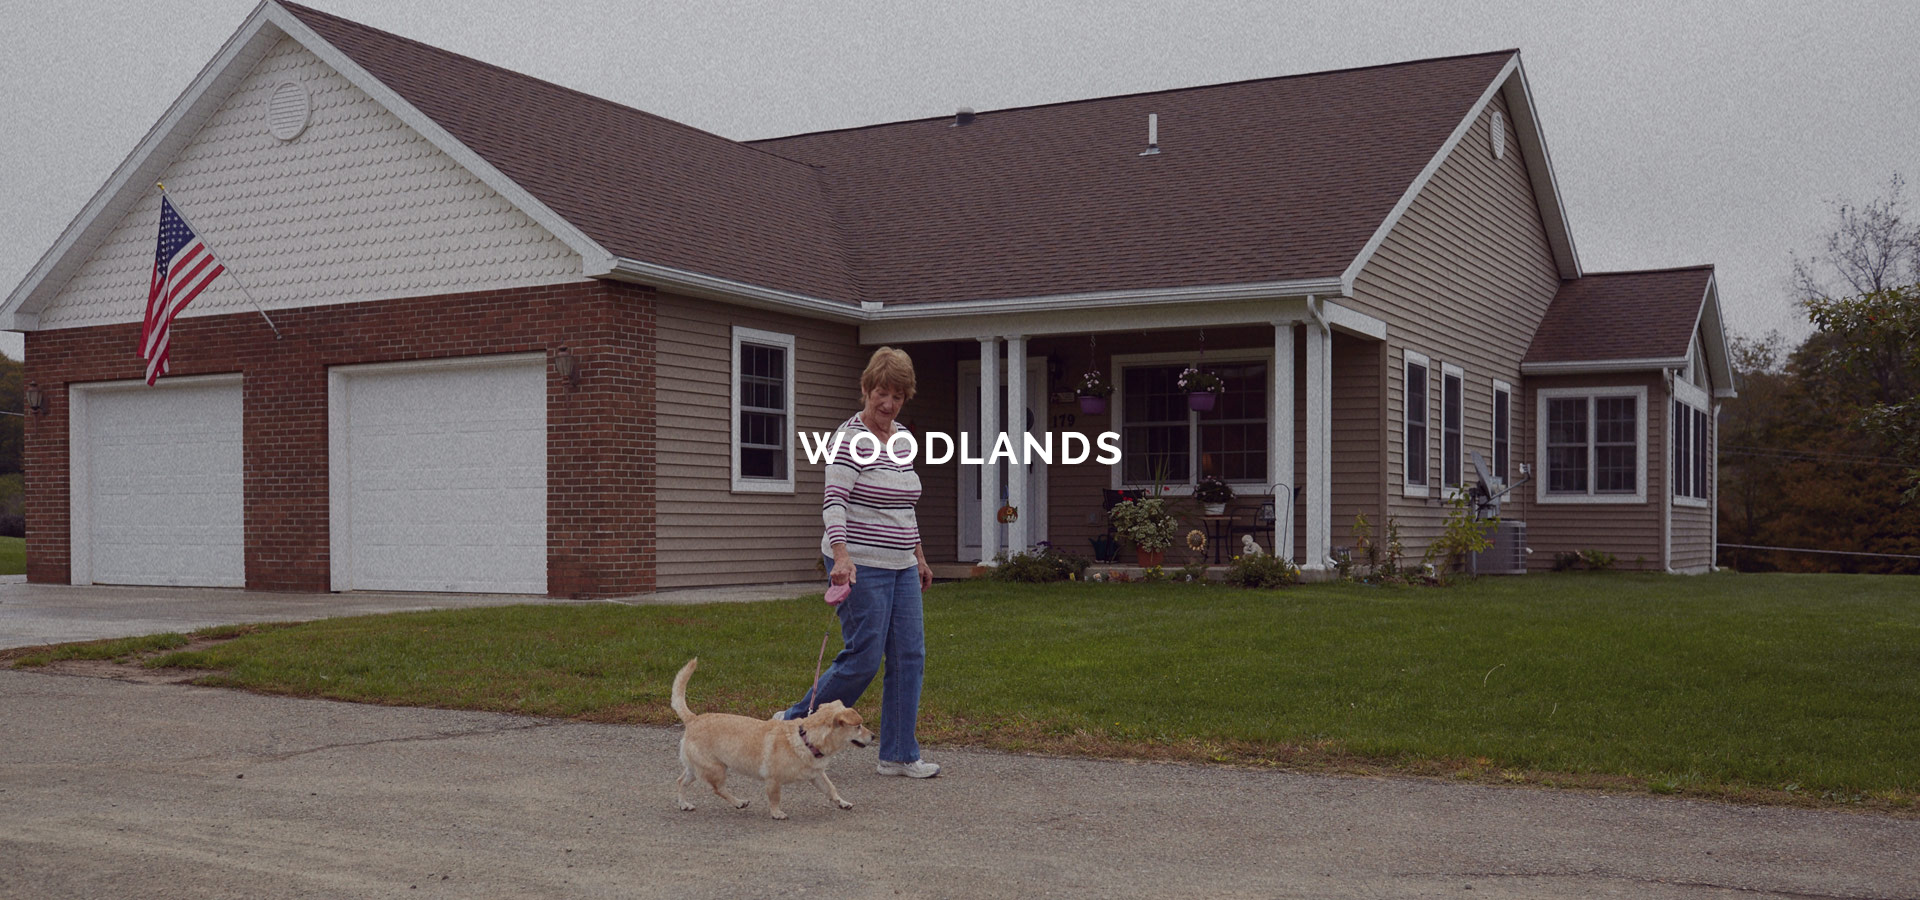 Woodlands-heritage-ministries-location-senior-retirement-community